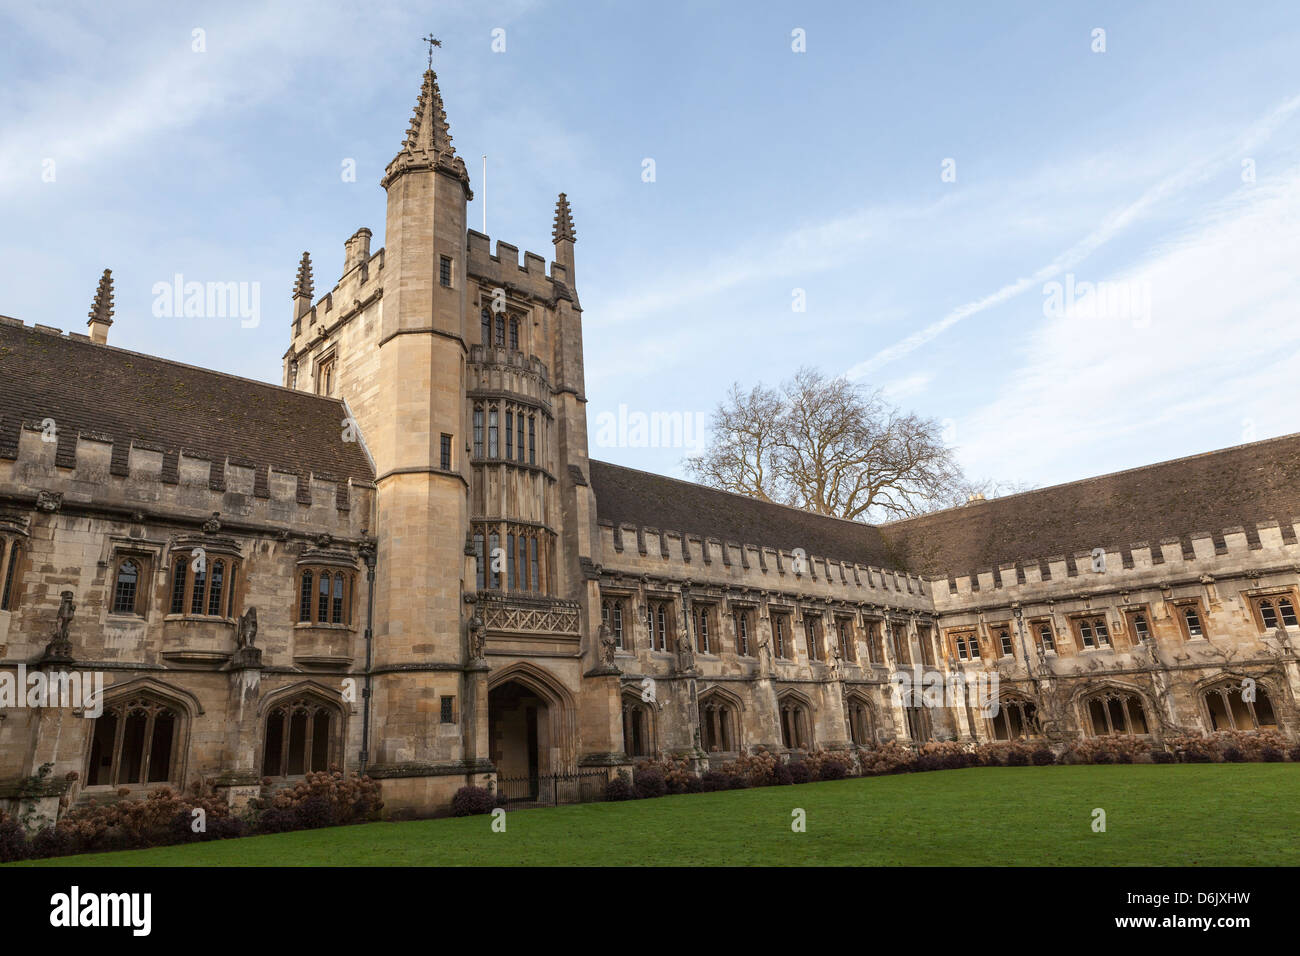 Magdalen College Cloister, Oxford, Oxfordshire, England, United Kingdom, Europe - Stock Image